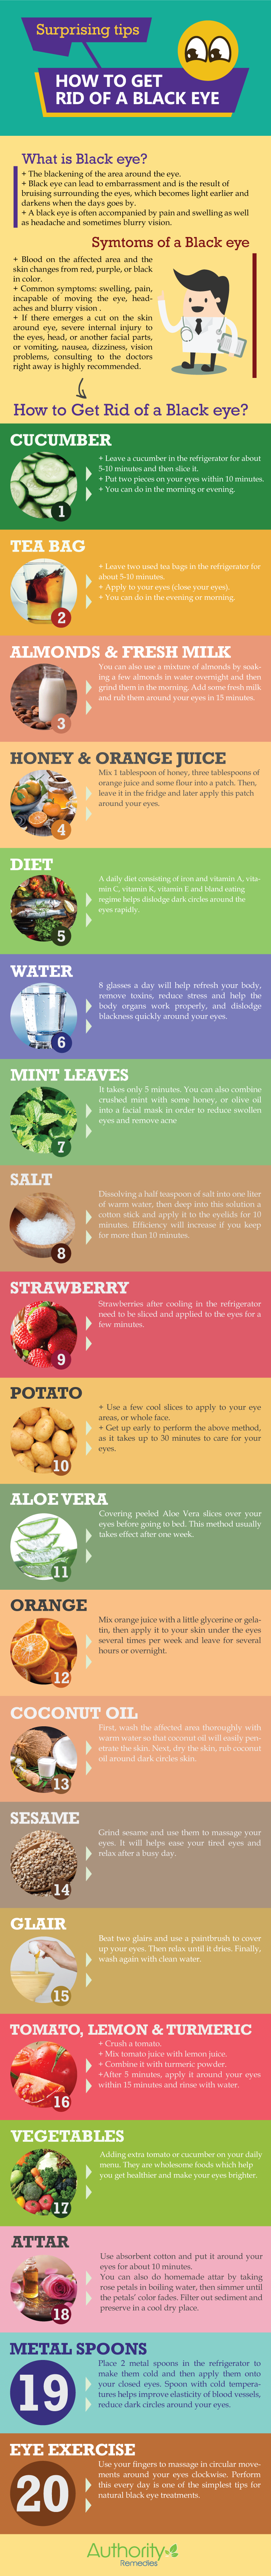 Infographic - How to get rid of a black eye